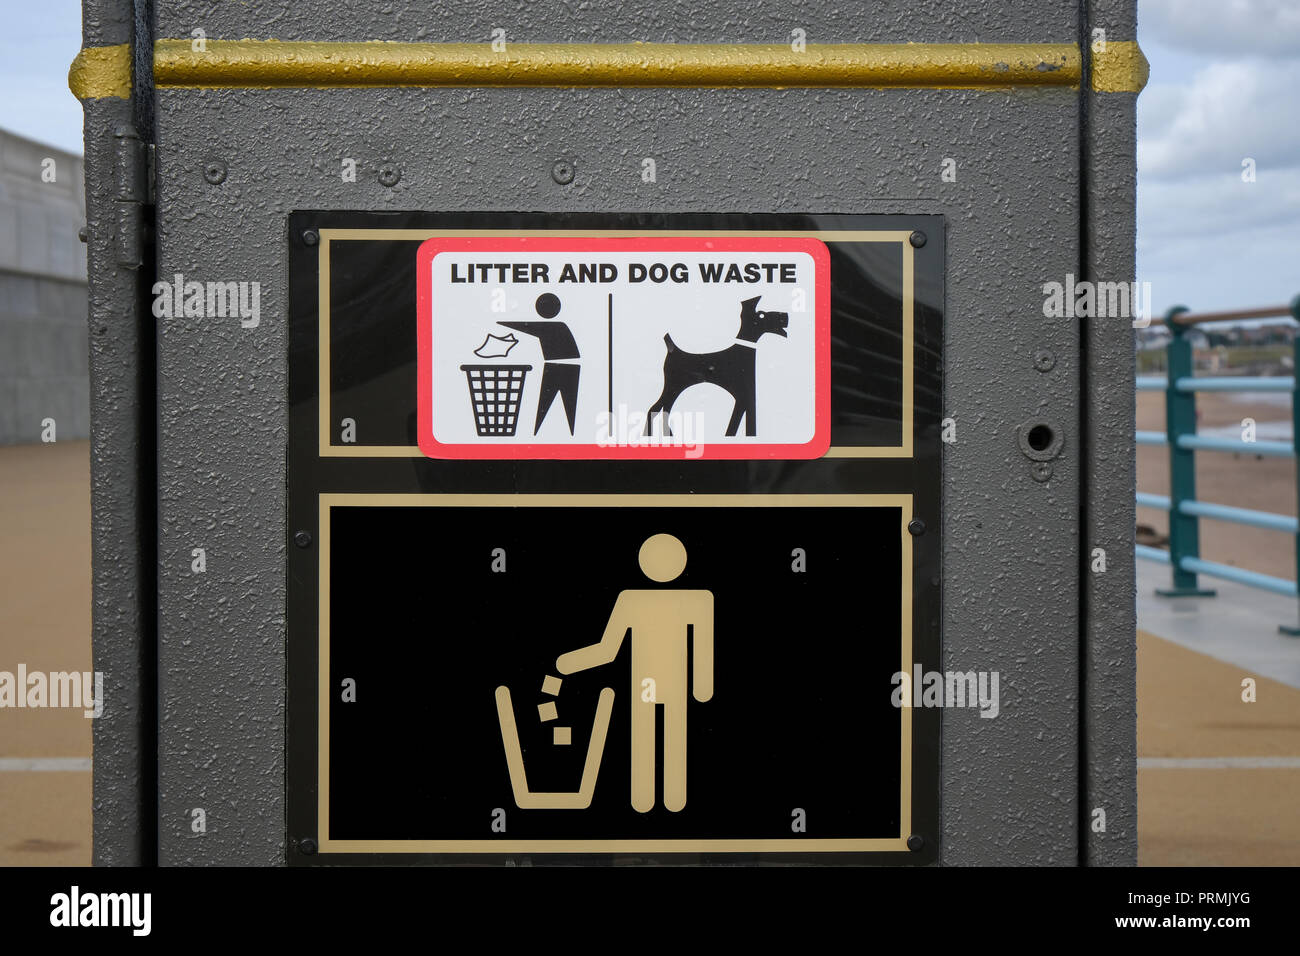 Litter and dog waste trash can or bin - Stock Image